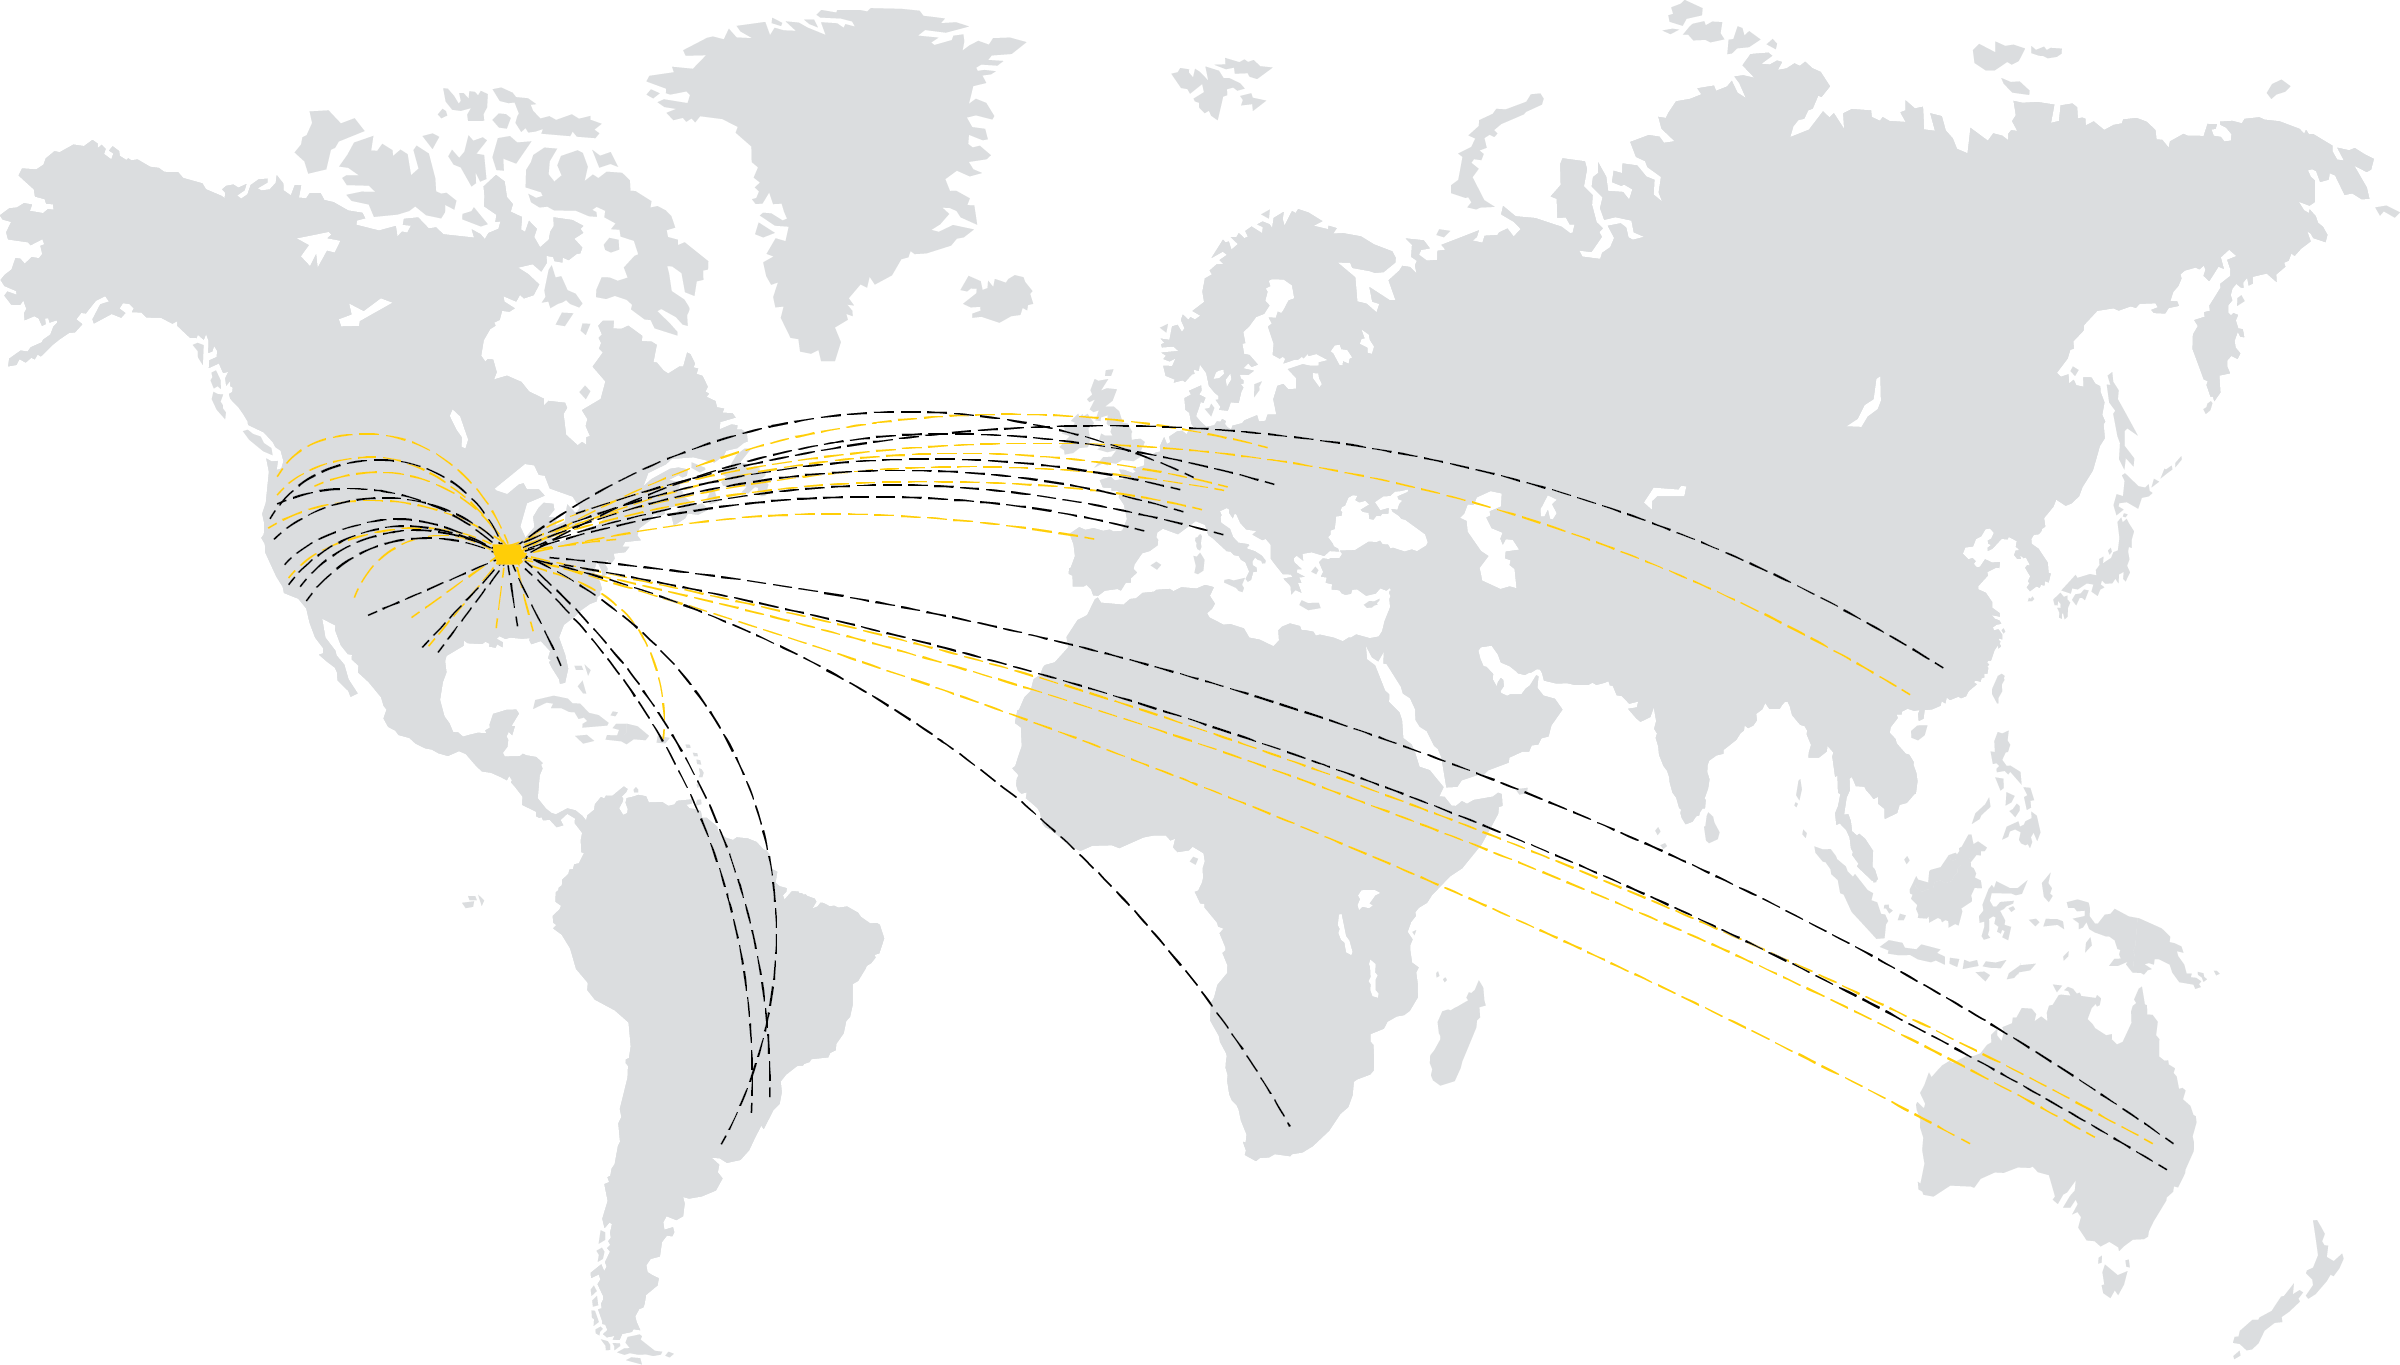 world map showing dashed lines from iowa city to points all over the world